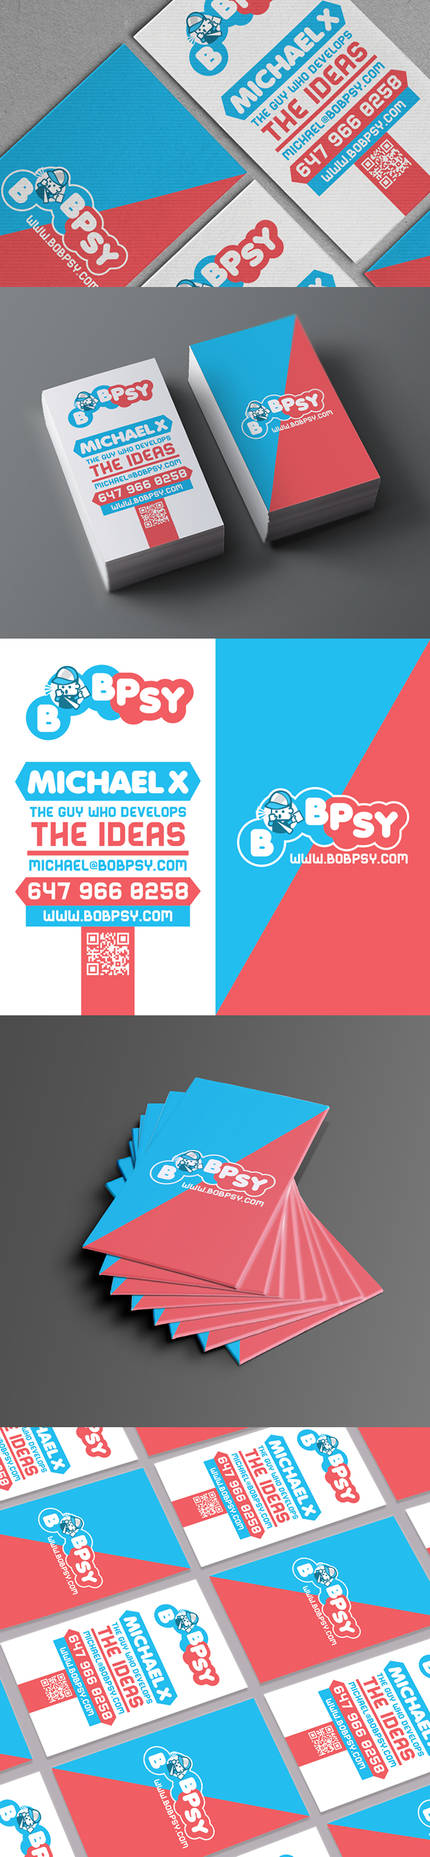 Bobpsy business card by Lemongraphic